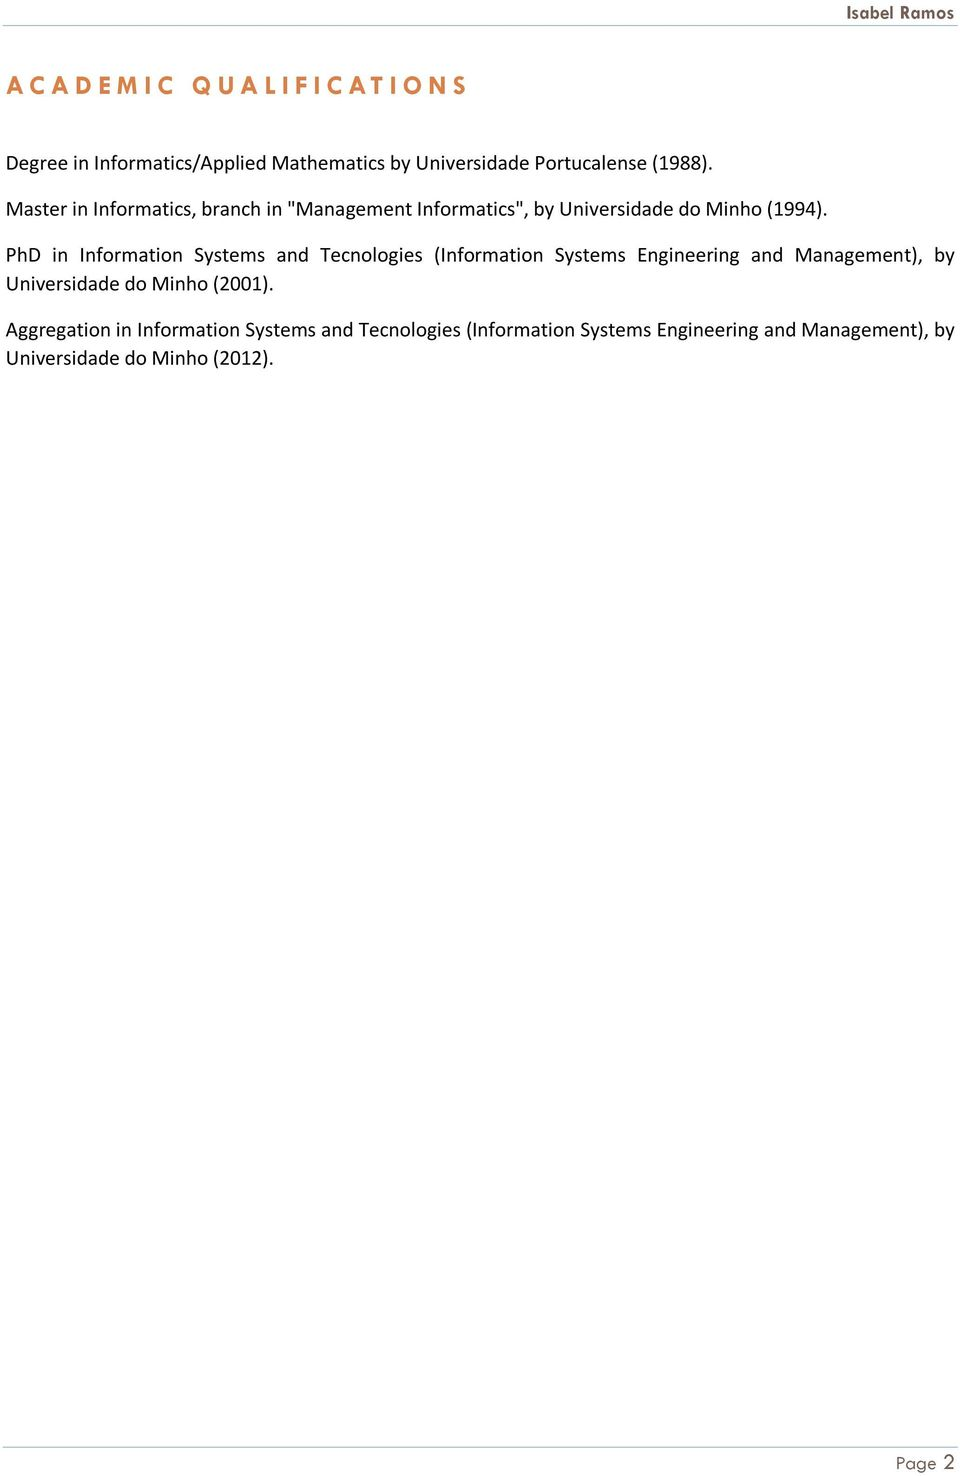 PhD in Information Systems and Tecnologies (Information Systems Engineering and Management), by Universidade do Minho